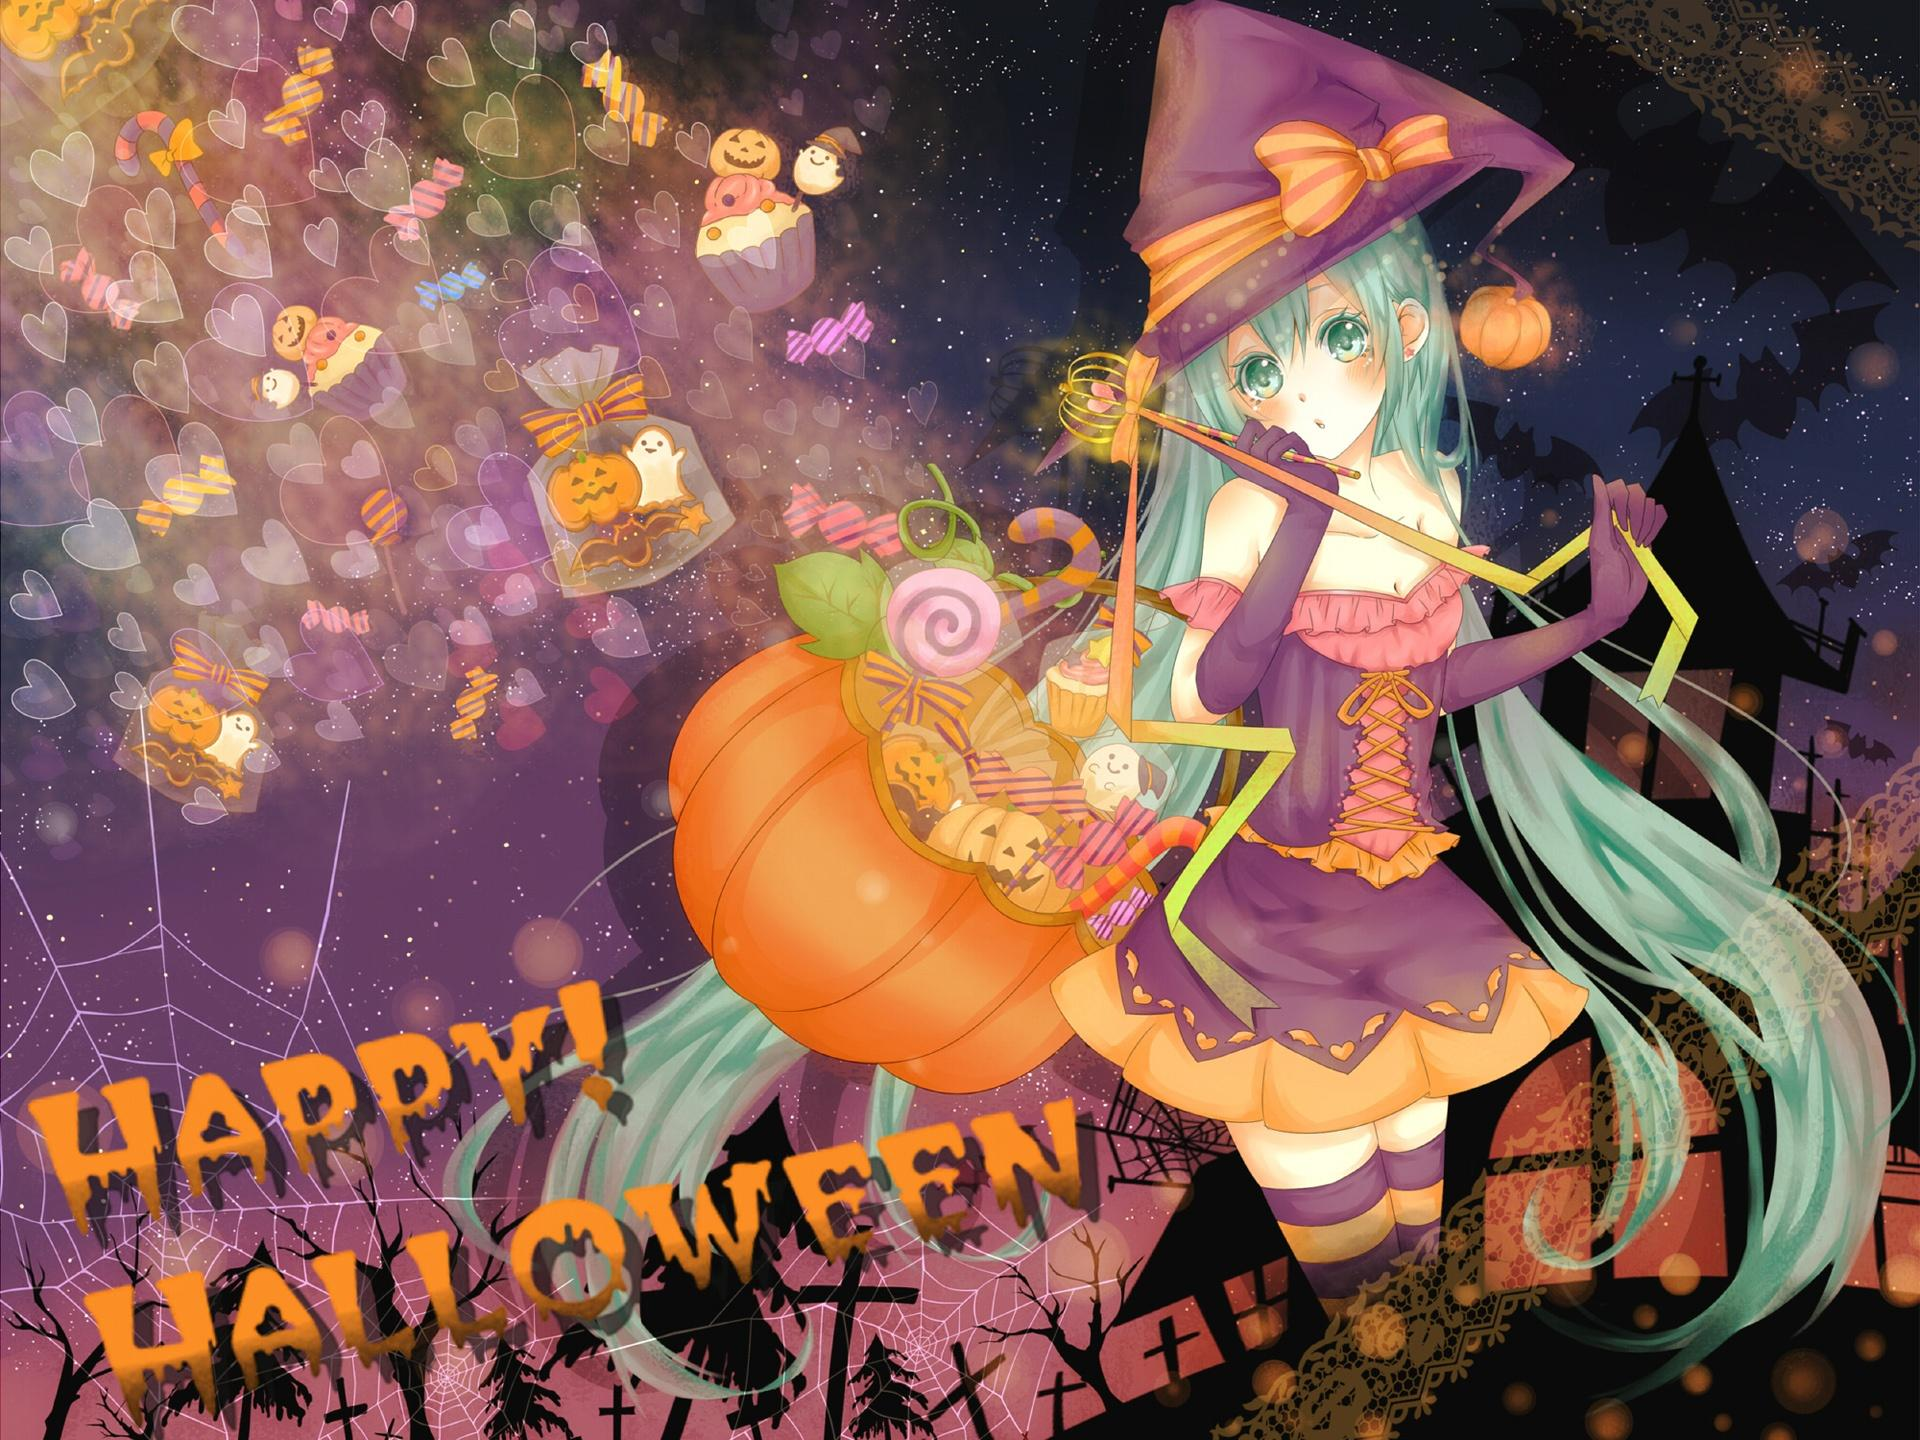 Wallpapers Halloween anime girl 1920x1440 HD Picture, Image